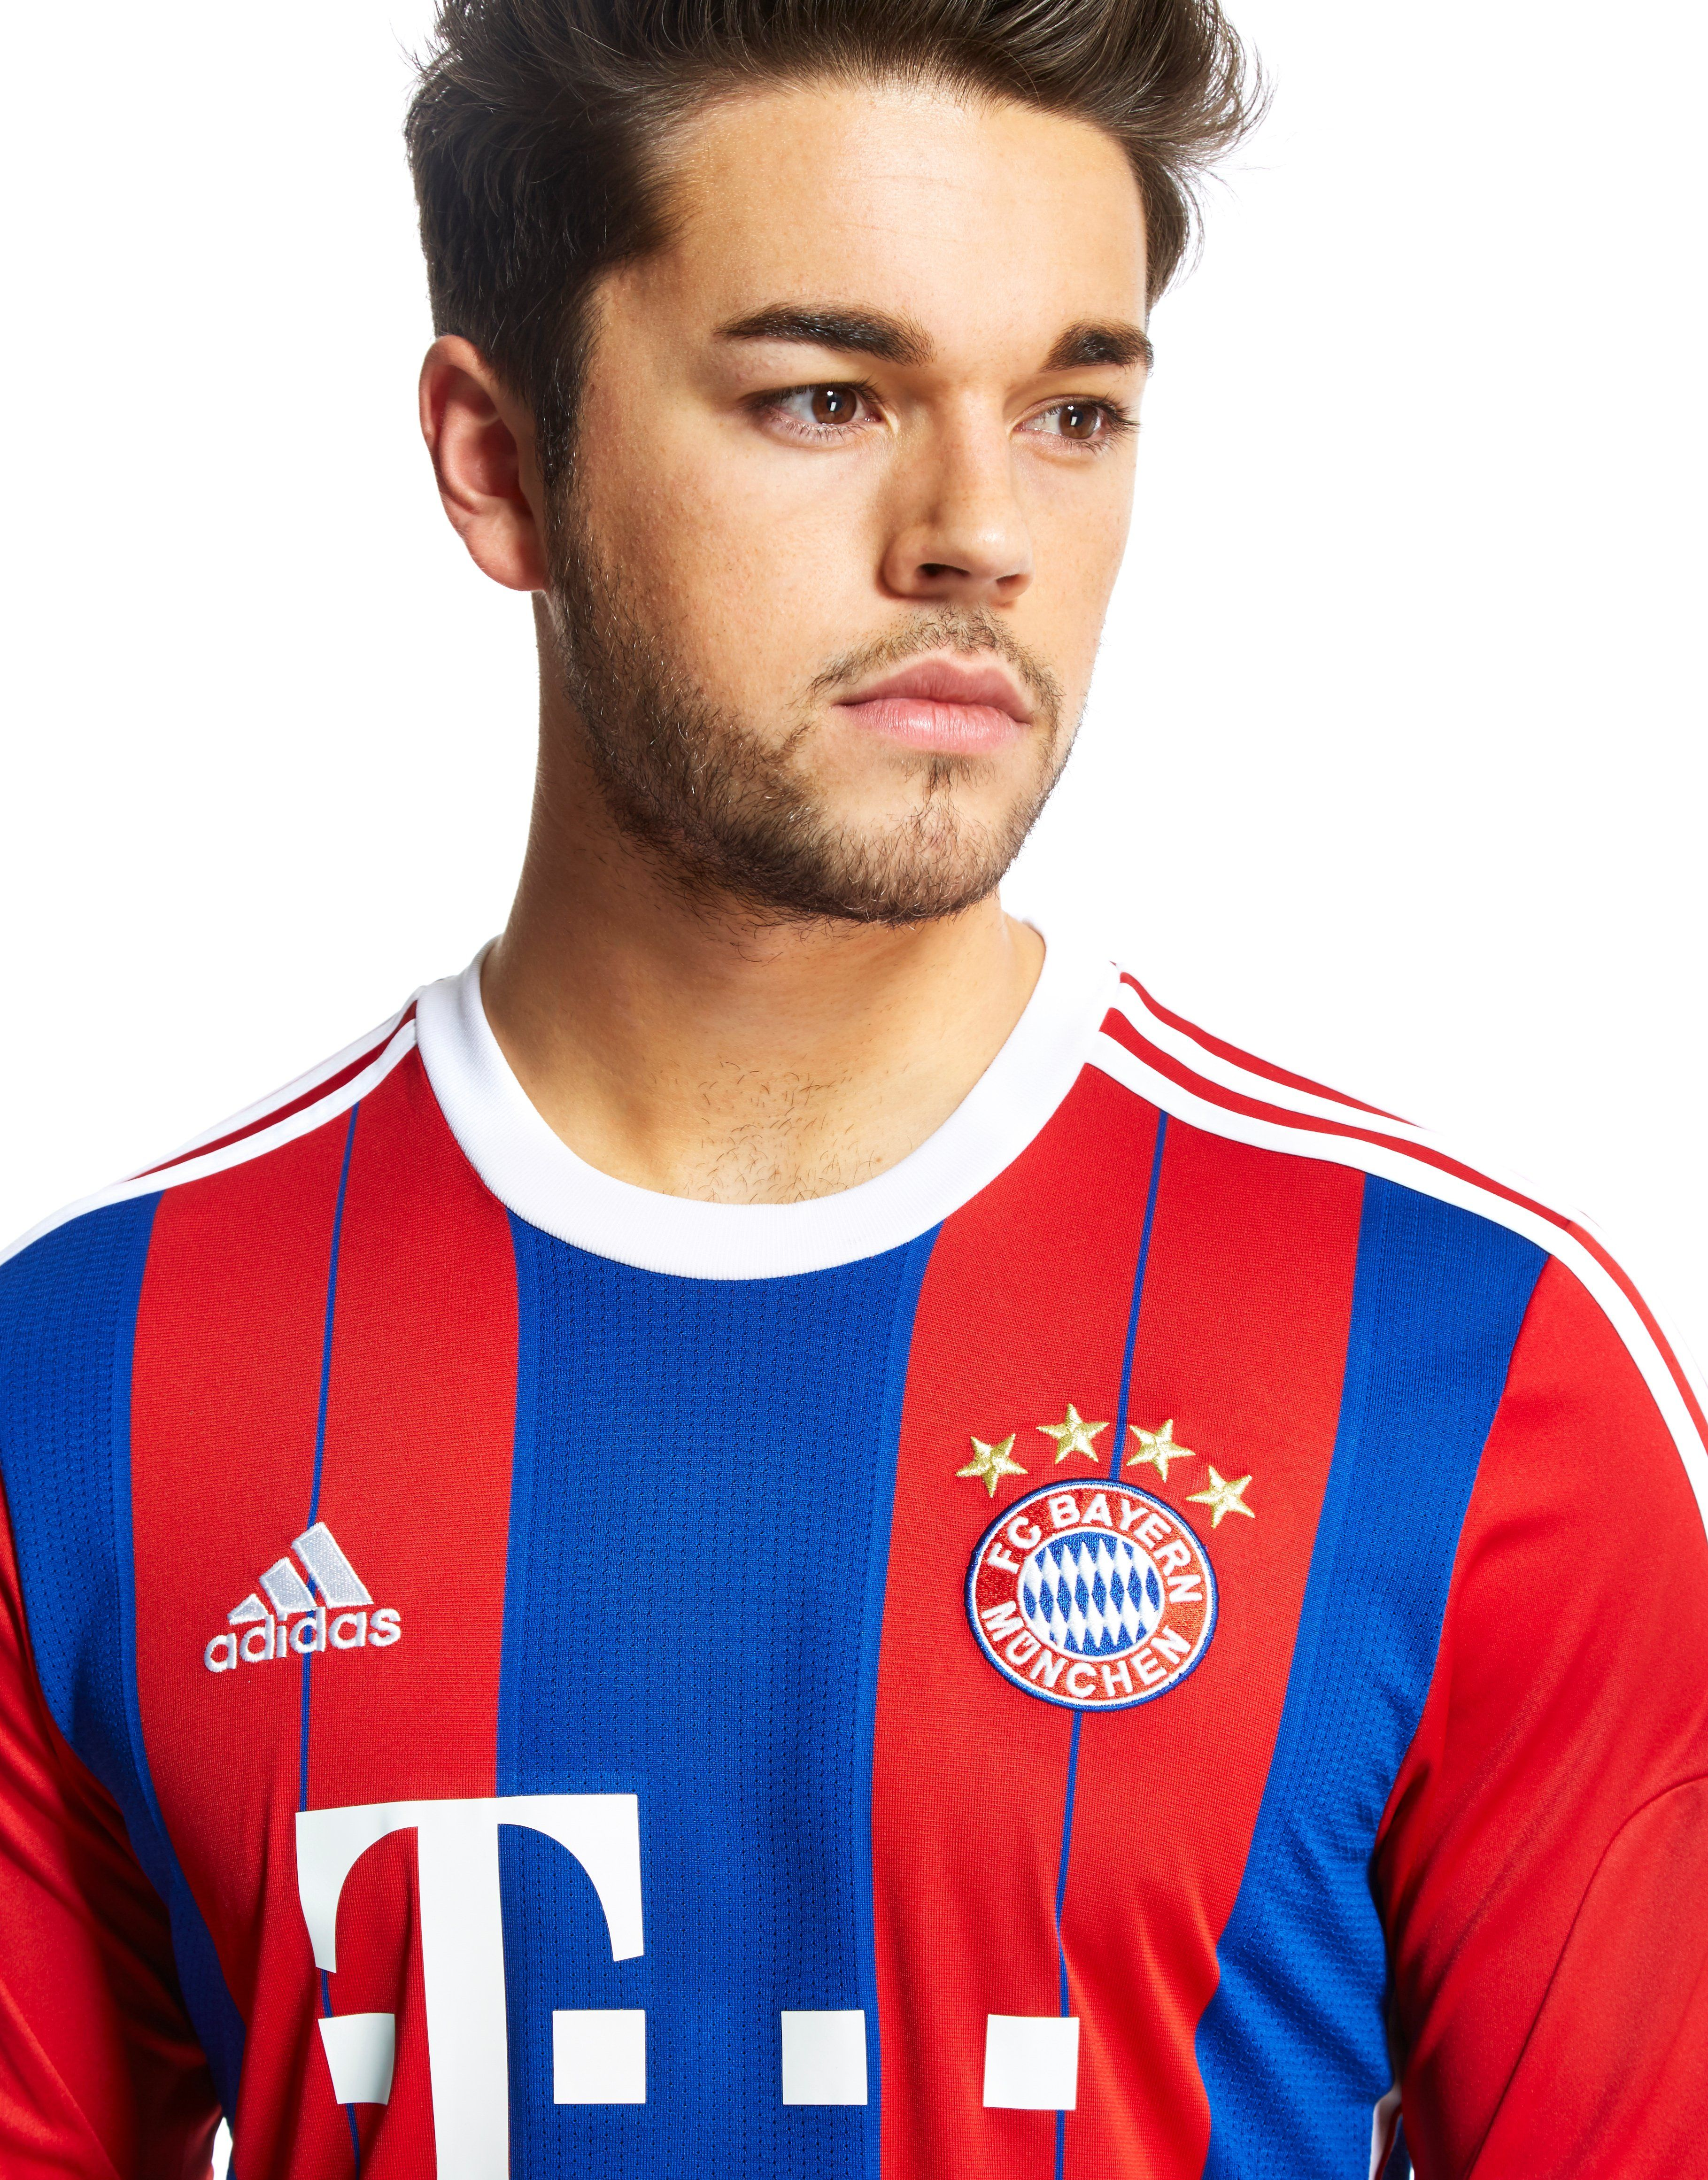 adidas Bayern Munich 2014 Home Shirt